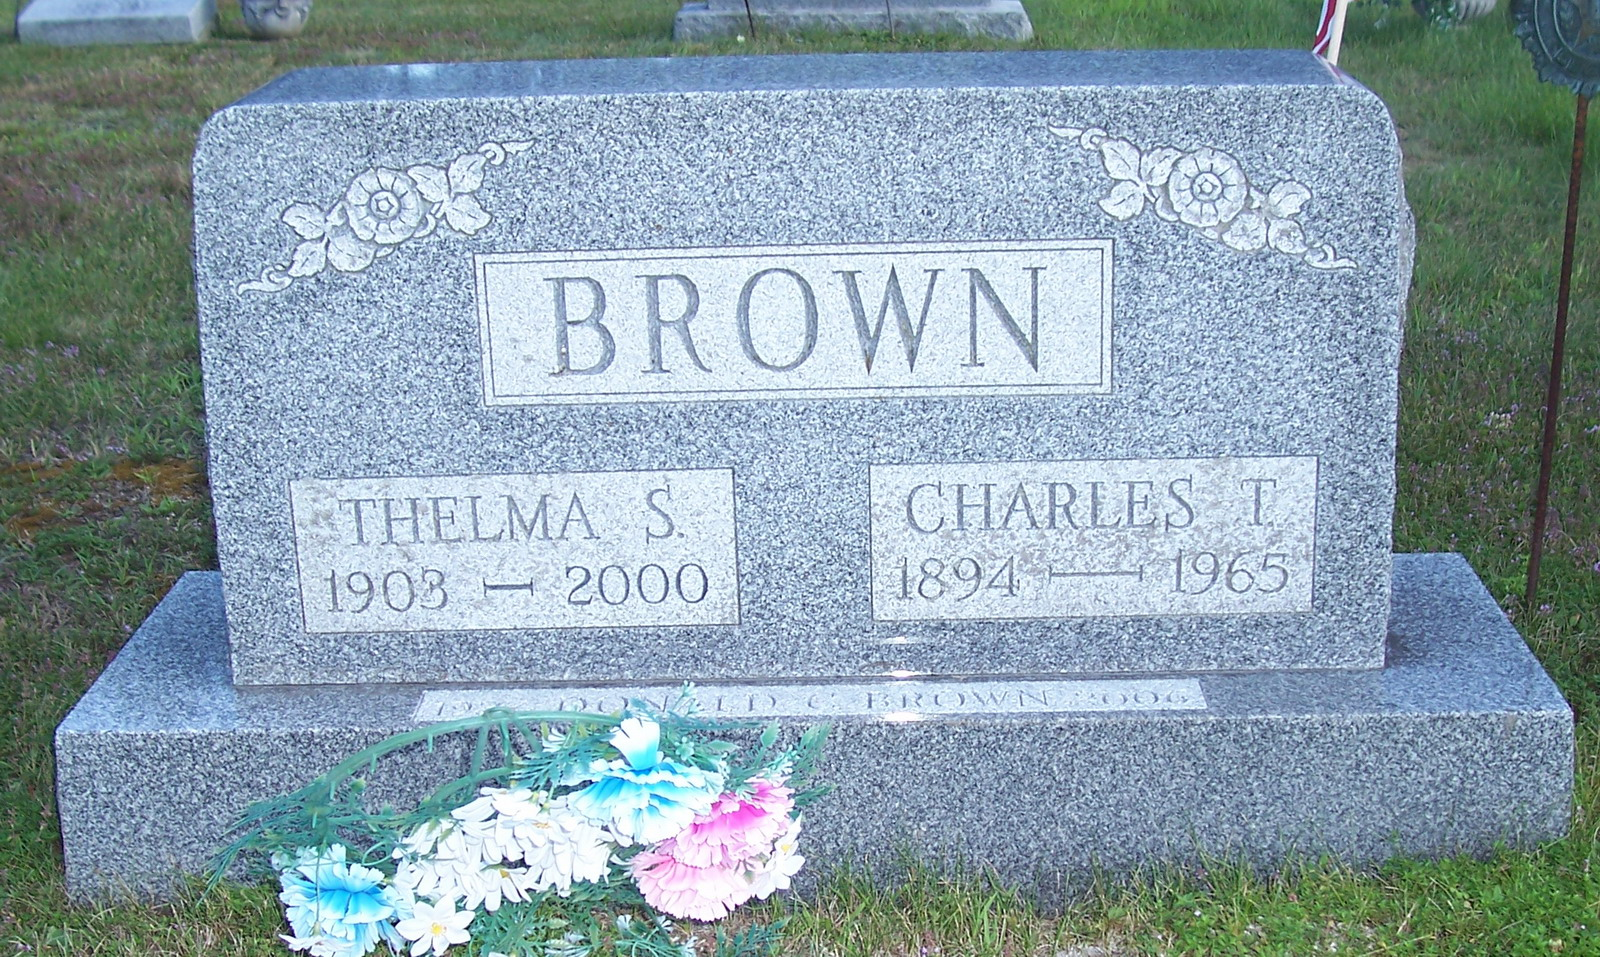 ??ladys T Brown